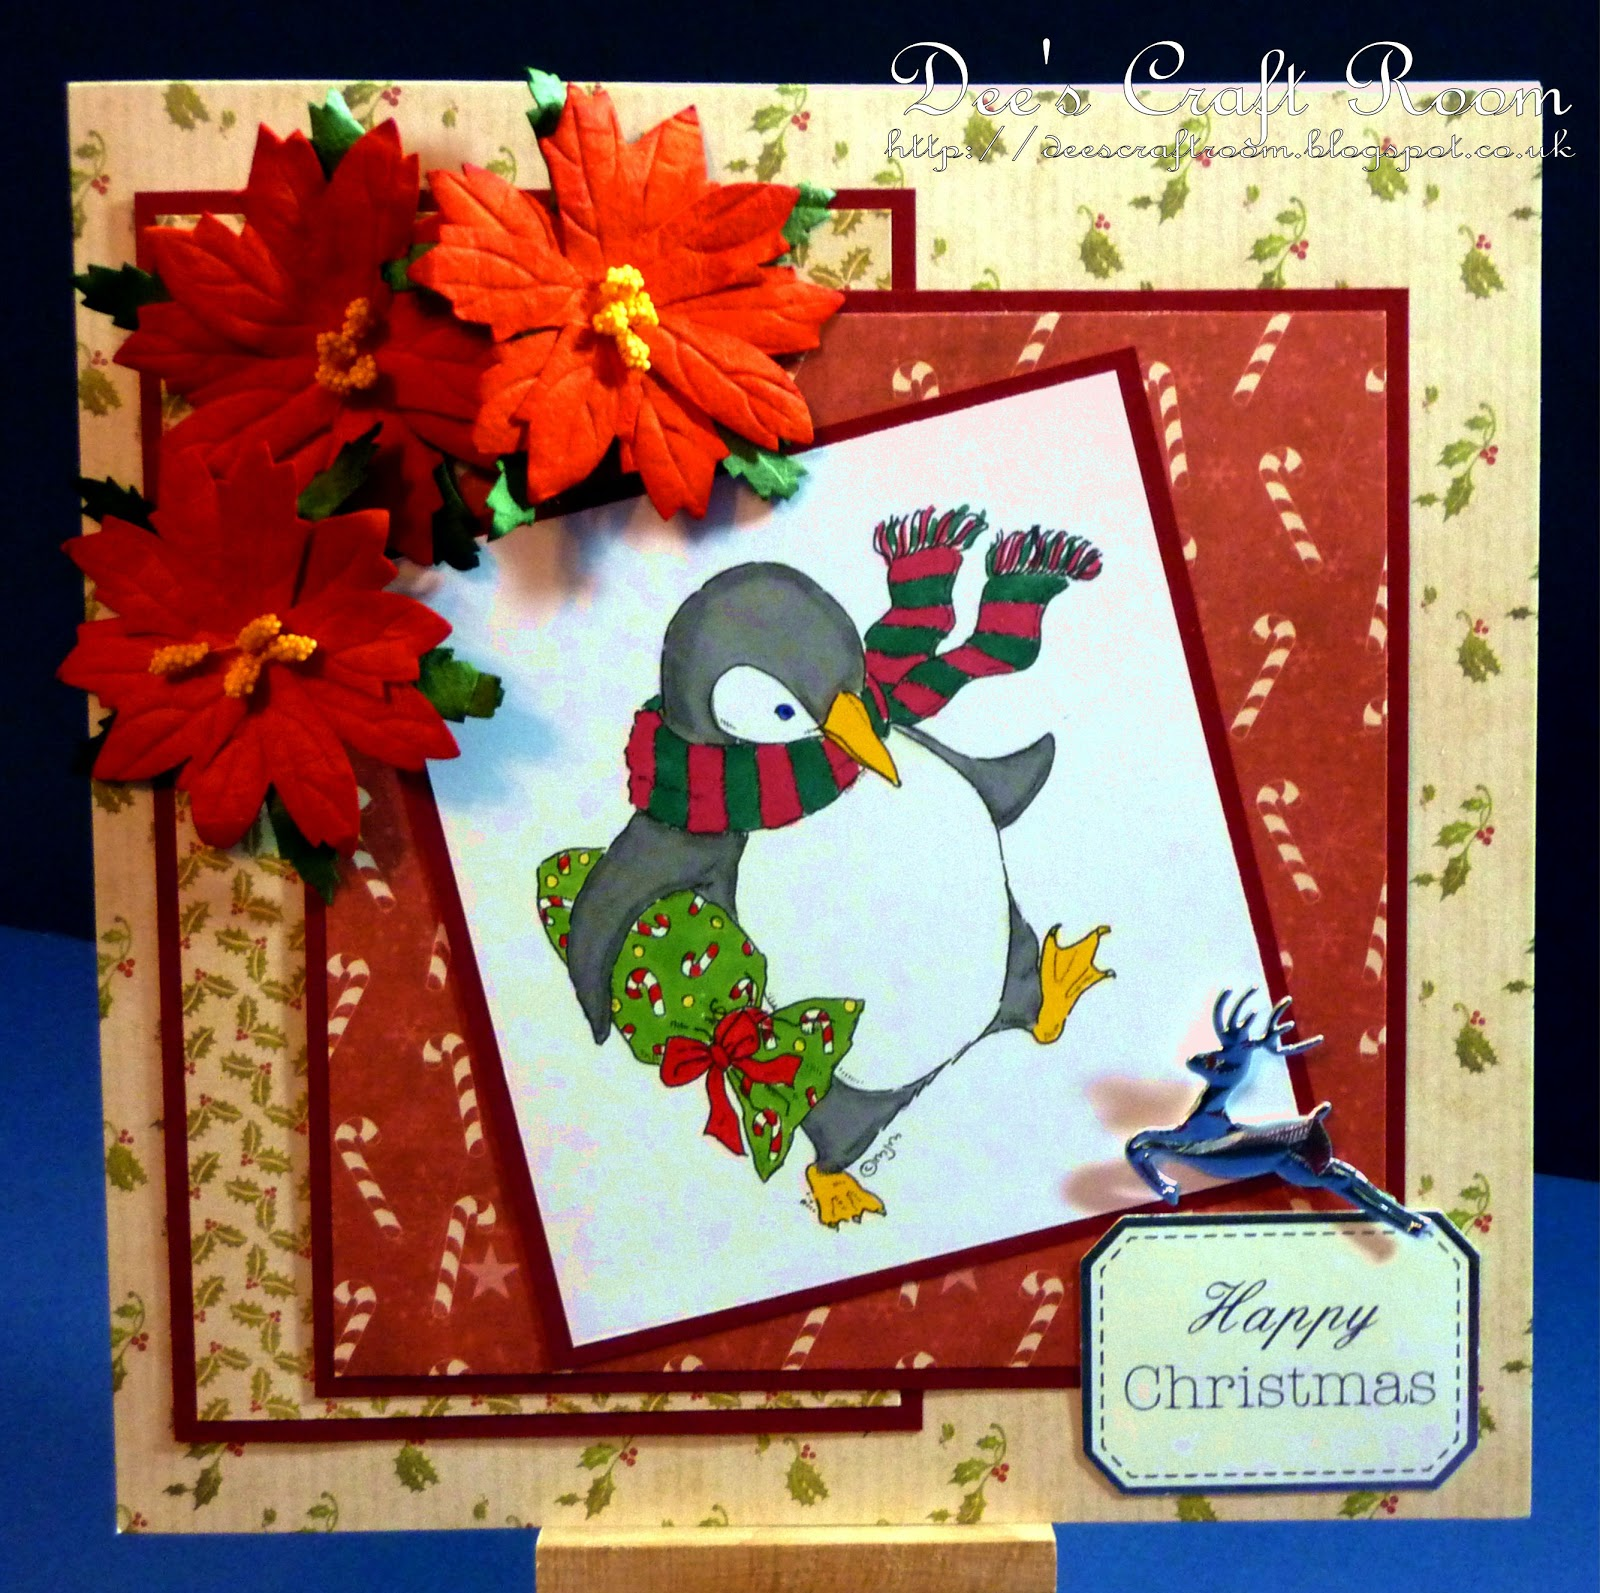 Christmas Backing Card For Crafting